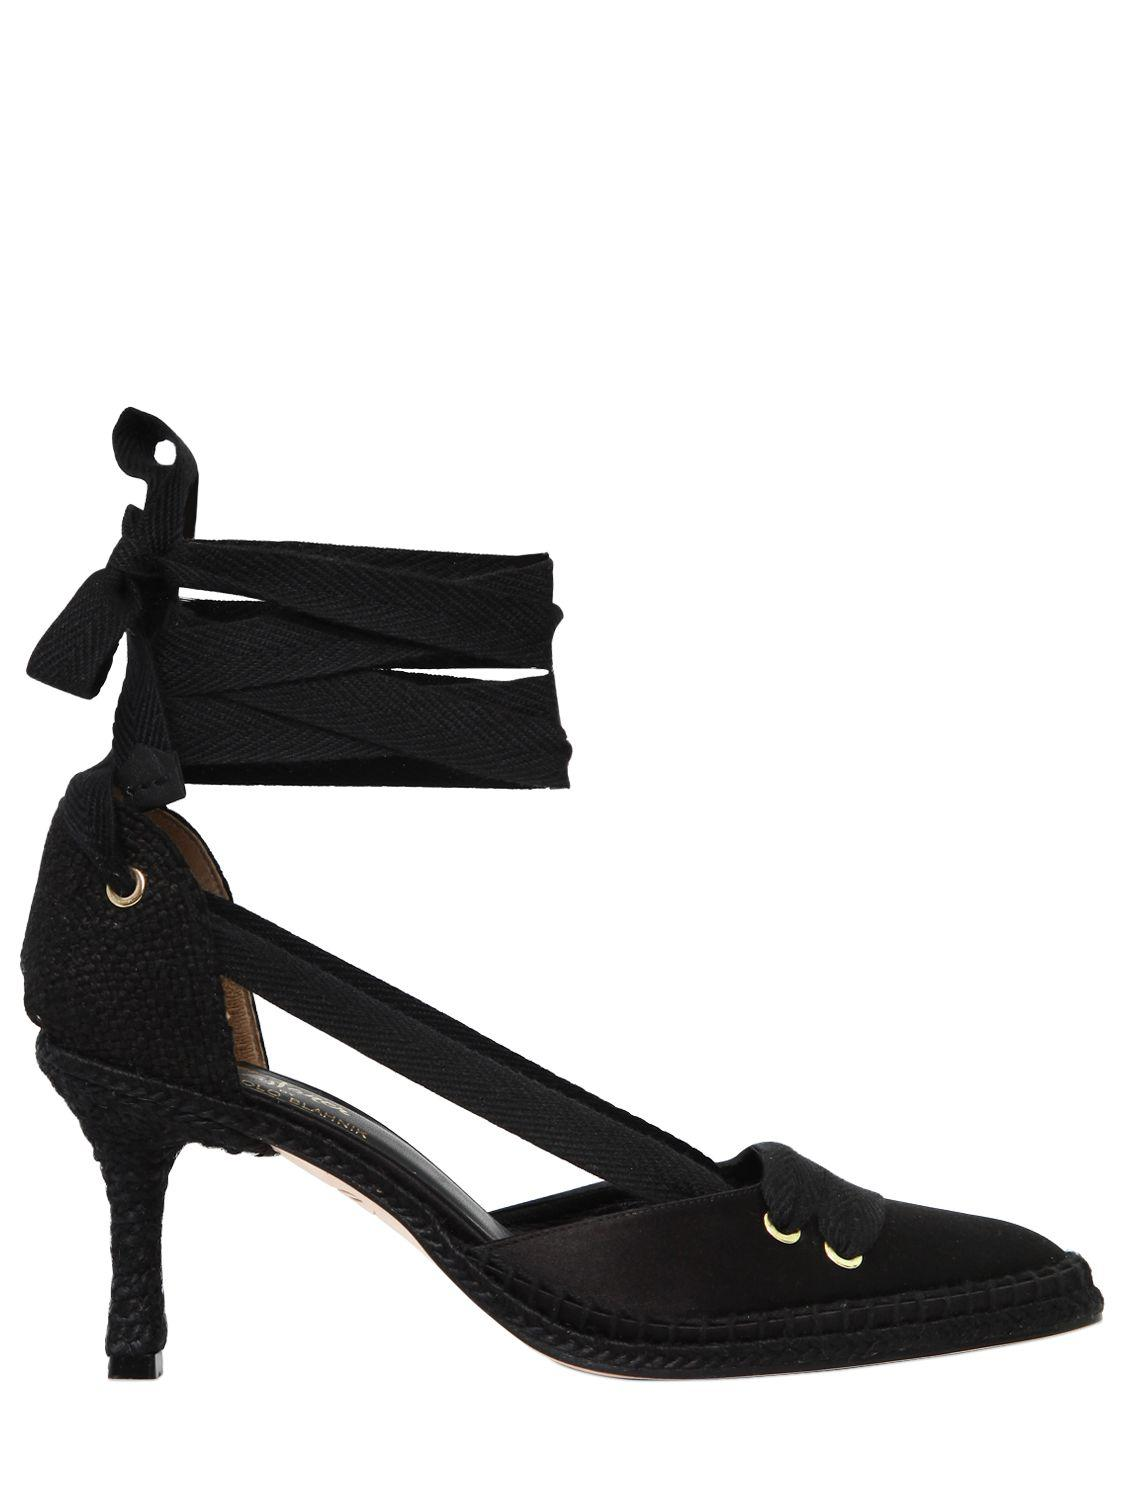 Manolo Blahnik 70MM MANOLO NIGHT SATIN LACE-UP PUMPS